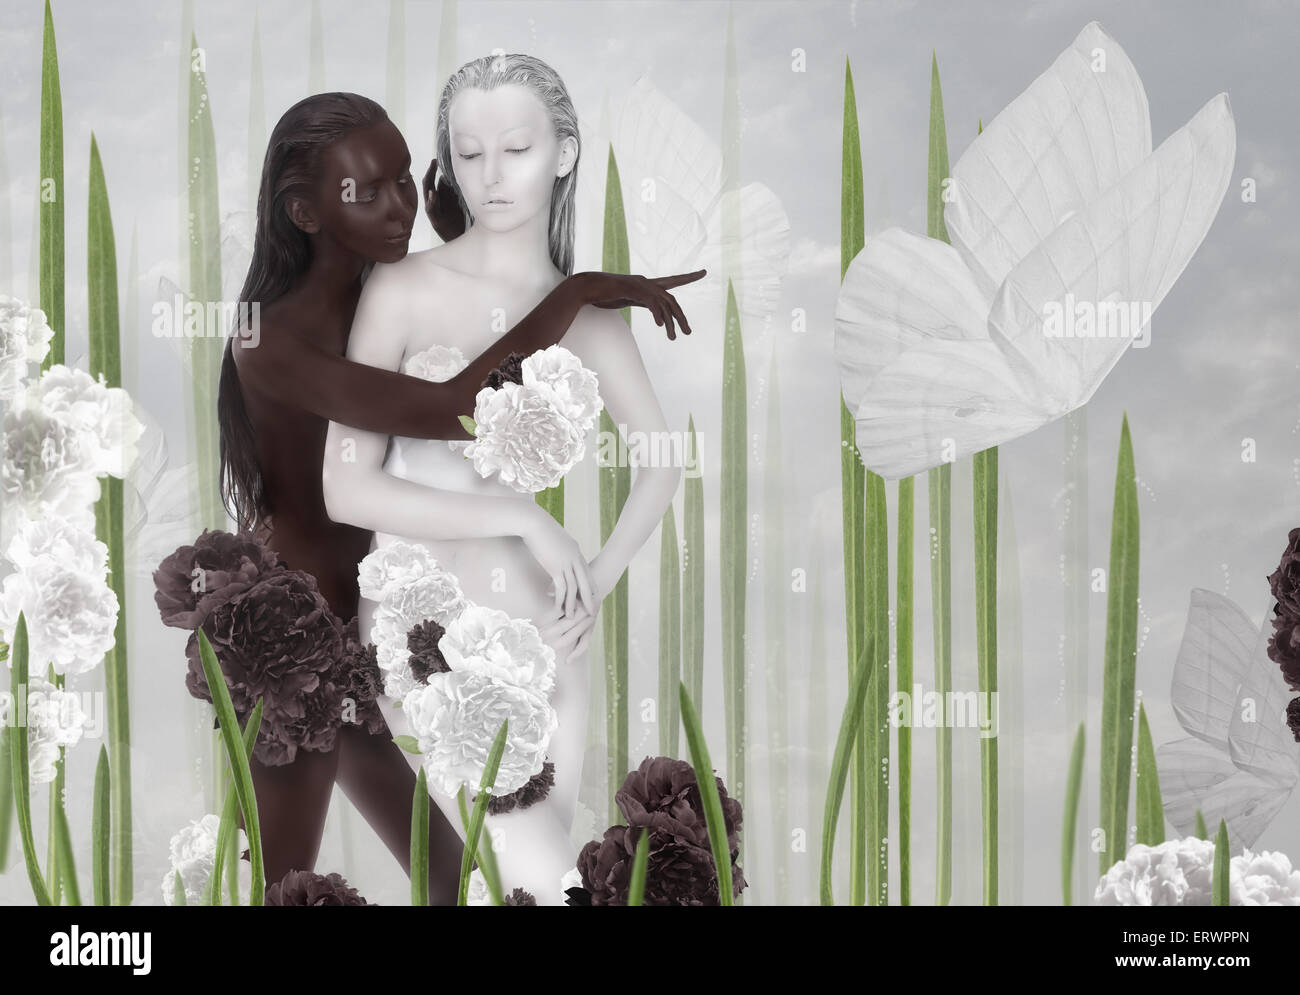 Imagination. Two Women Colored Black and White - Stock Image